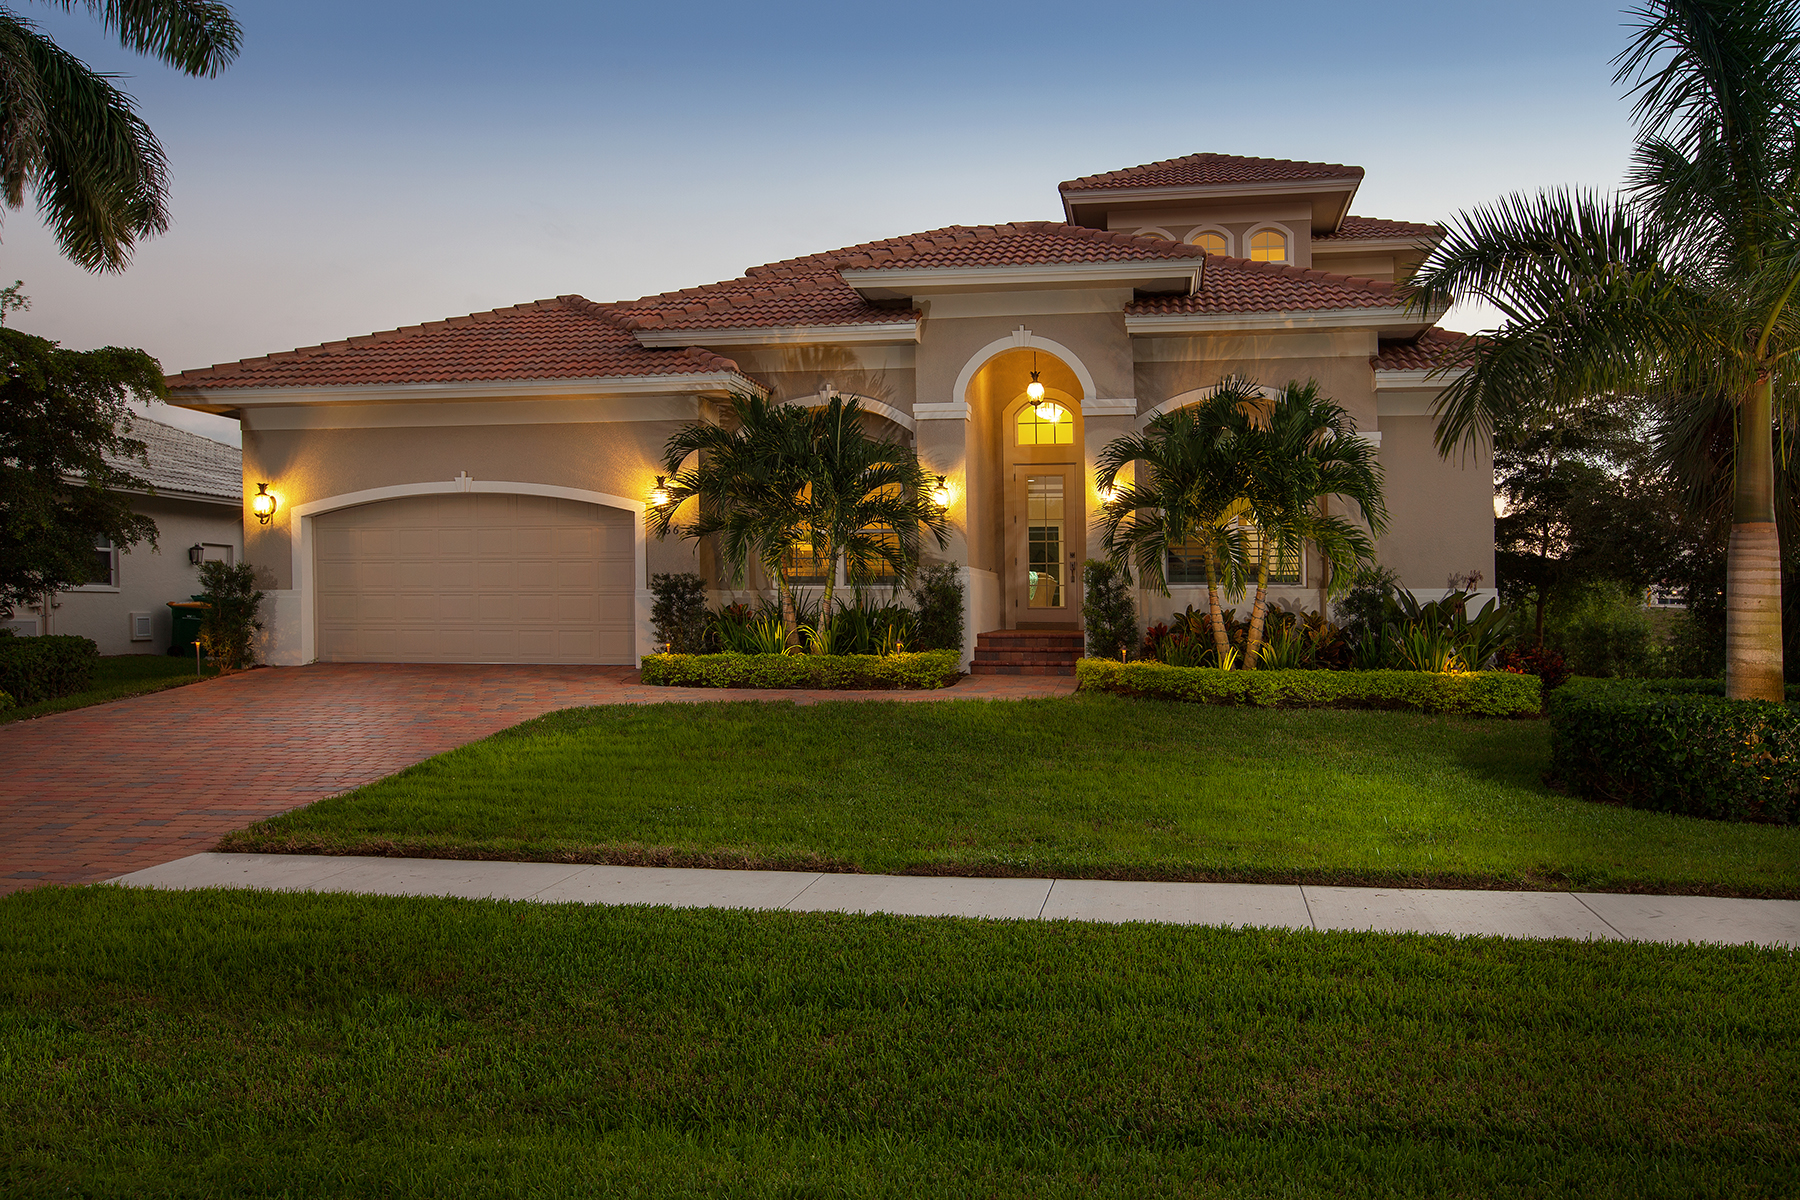 Single Family Home for Sale at MARCO ISLAND - DIPLOMAT COURT 566 Diplomat Ct Marco Island, Florida, 34145 United States